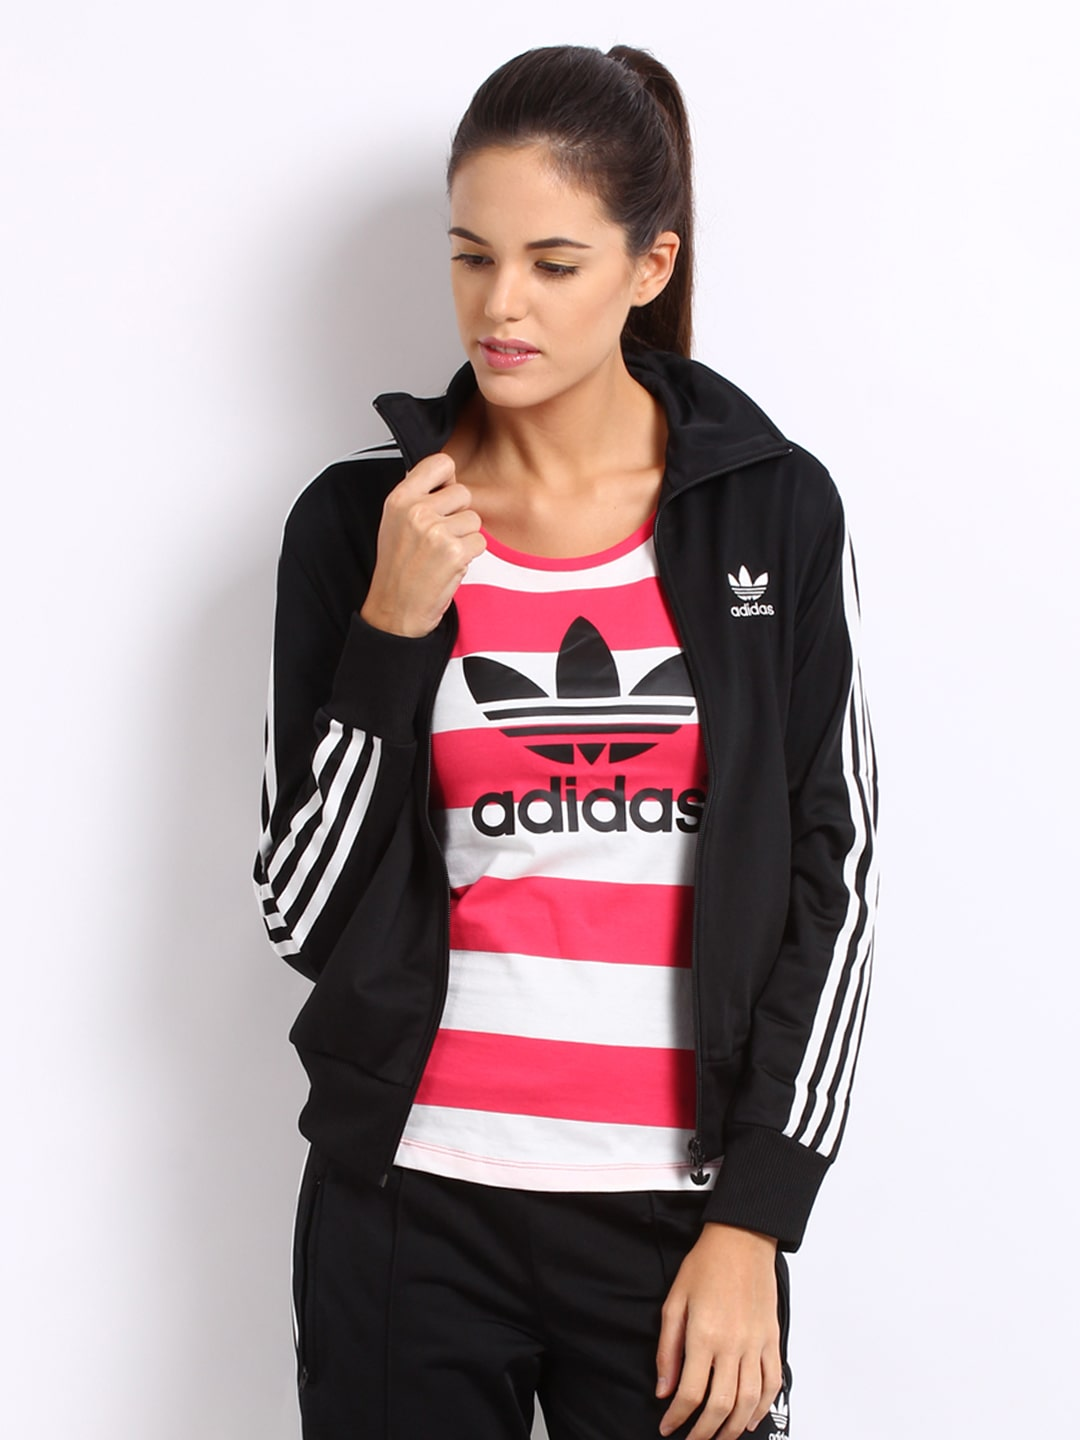 adidas originals jackets online india